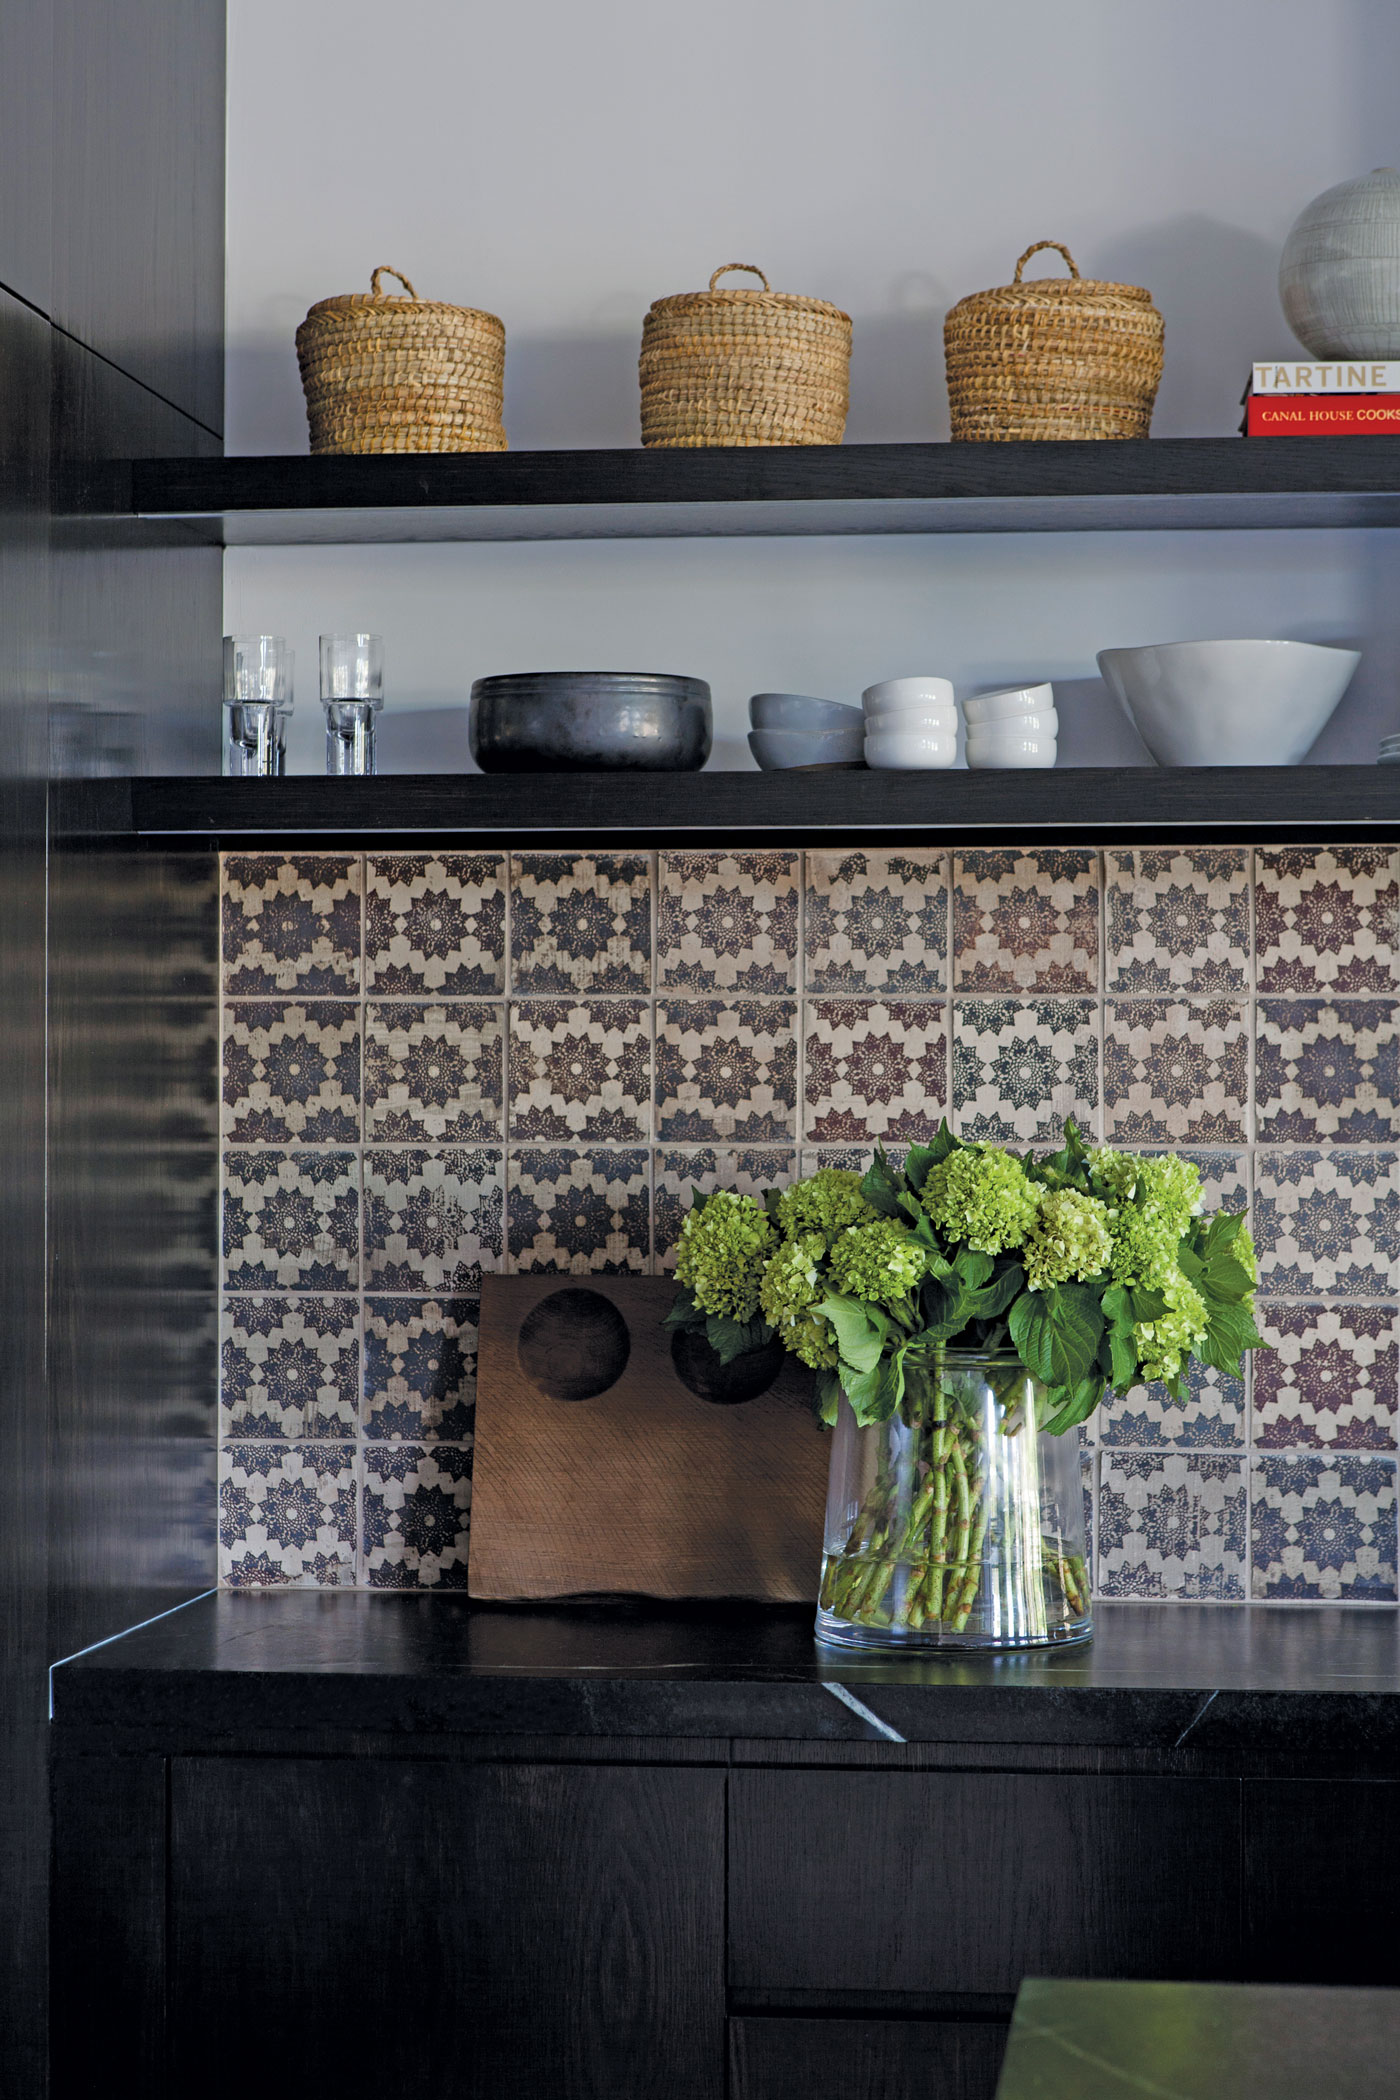 Dark Kitchen accents and tile backsplash with built in shelves